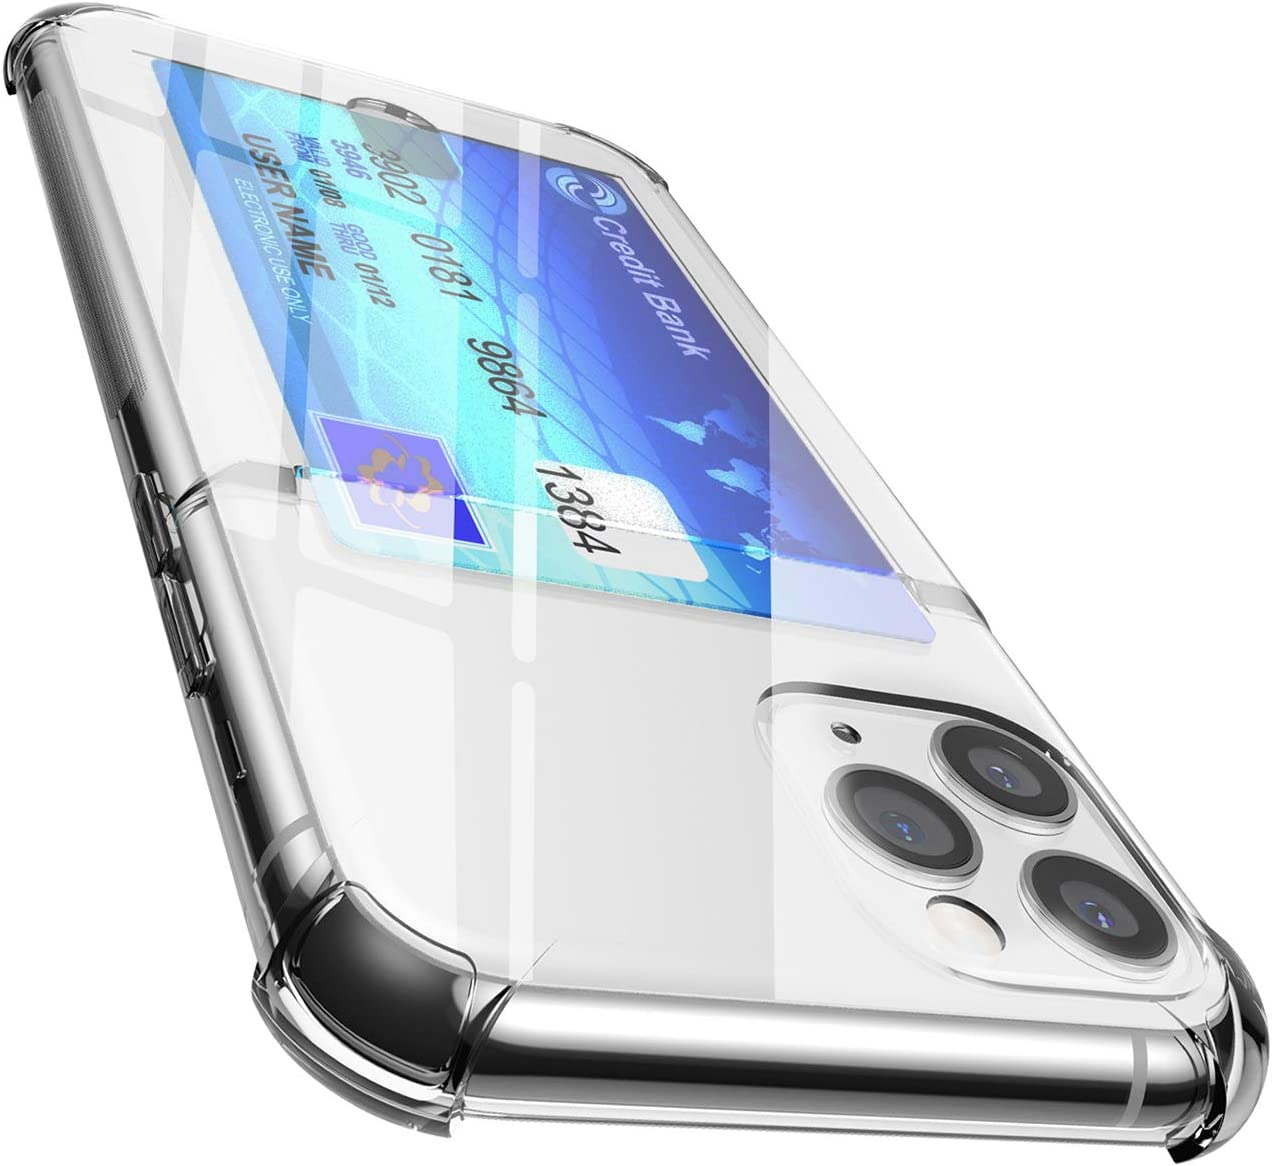 ANHONG iPhone 11 Pro Clear Case with Card Holder, [Slim Fit][Wireless Charger Compatible] Protective Soft TPU Rubber Gel Shock-Absorbing Wallet Case for iPhone 11 Pro 5.8 Inch (2019)